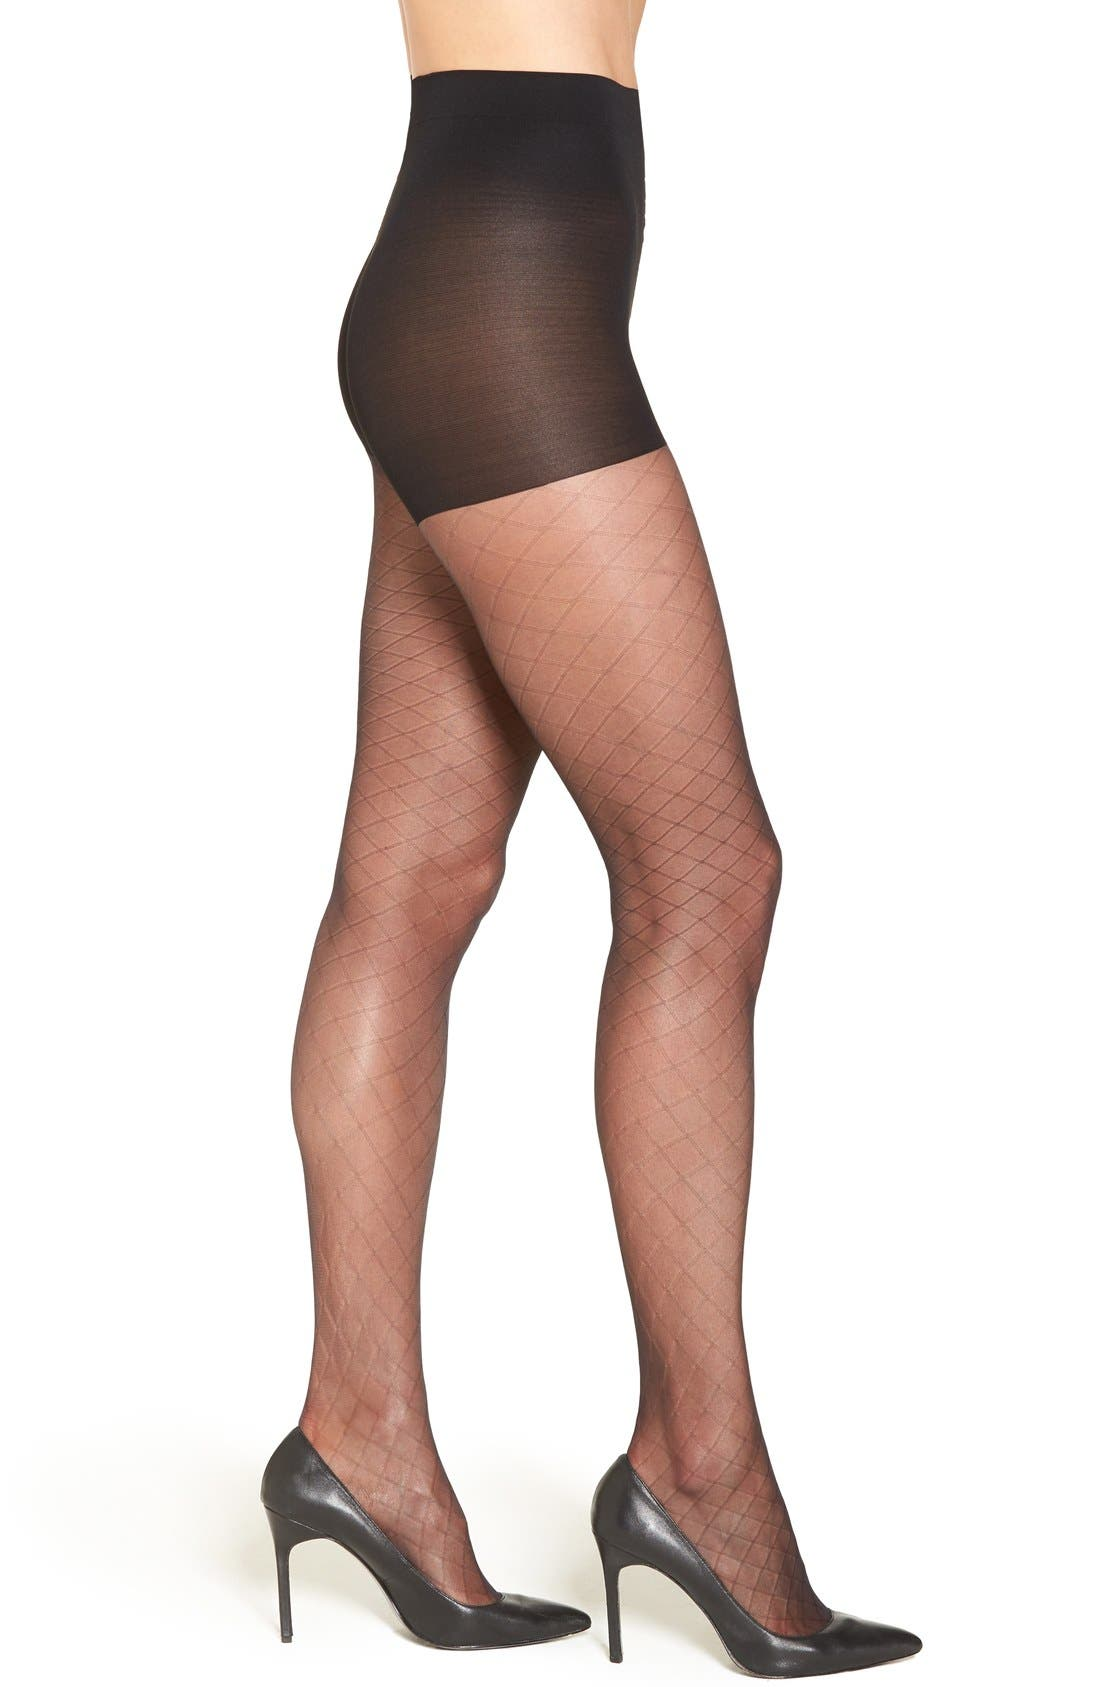 Diamond Knit Sheer Pantyhose,                         Main,                         color, BLACK